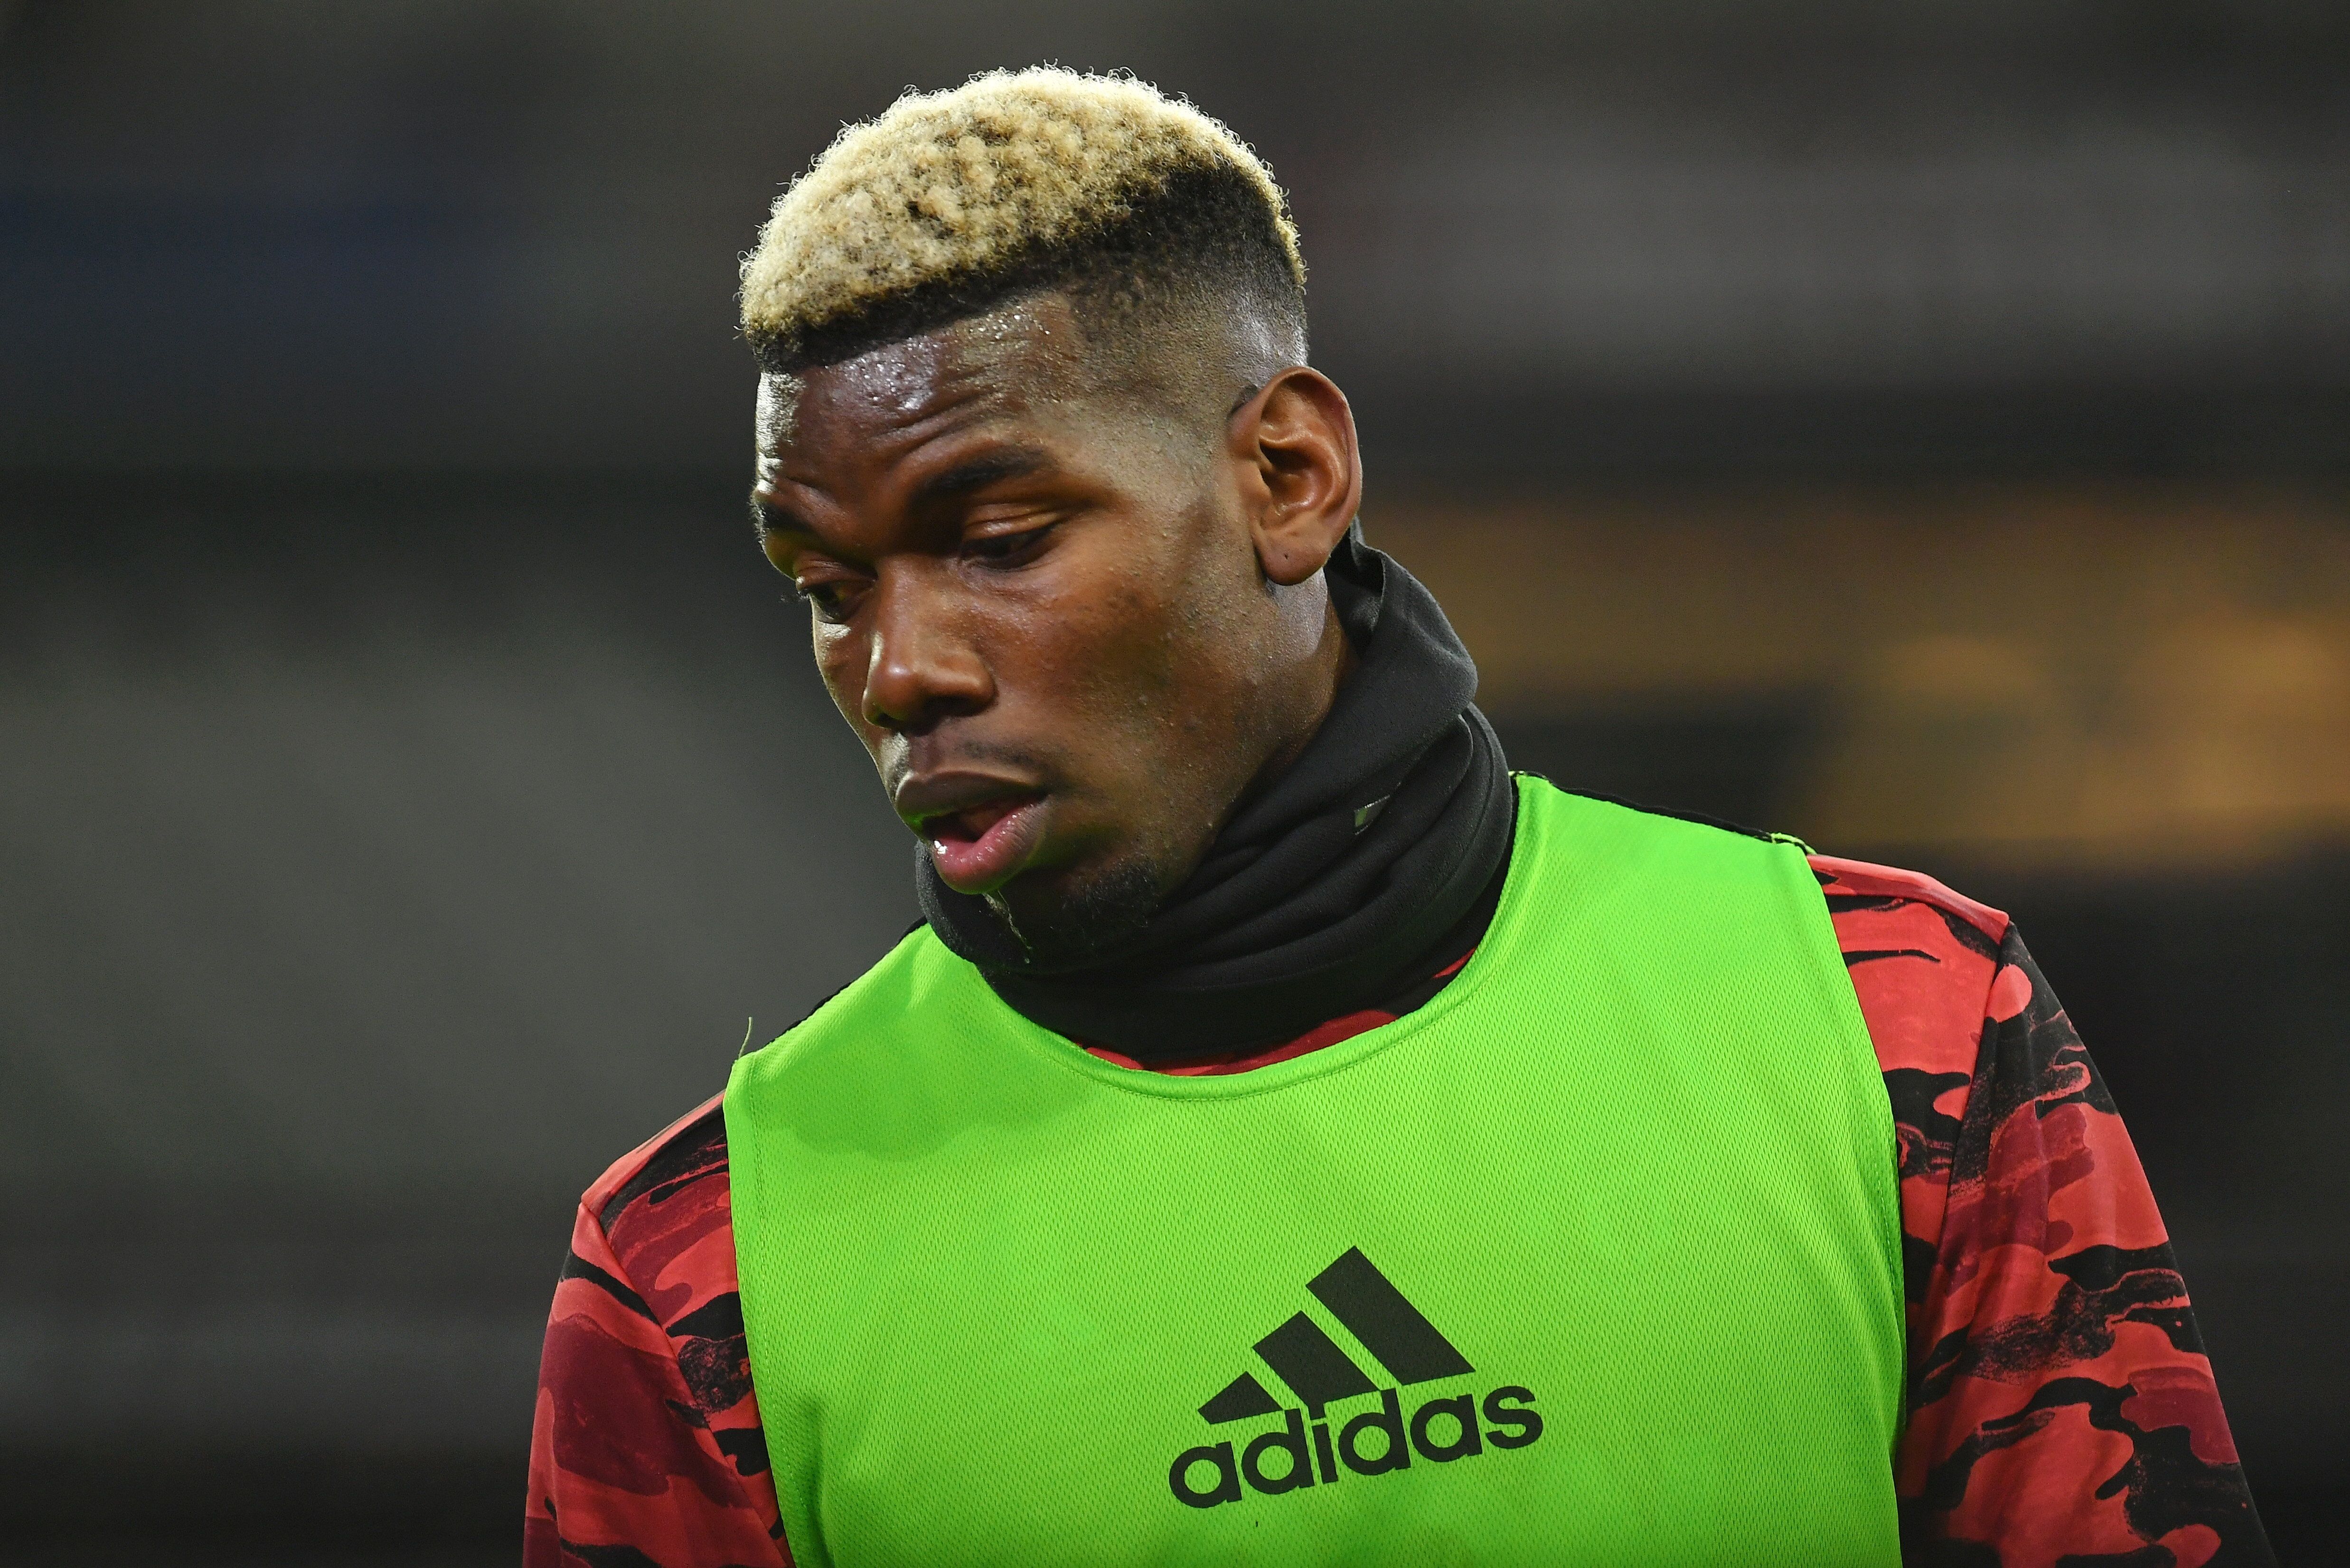 As A Manchester United Fan, It's Time To Let Paul Pogba Go (Paul Pogba can be seen in the picture)